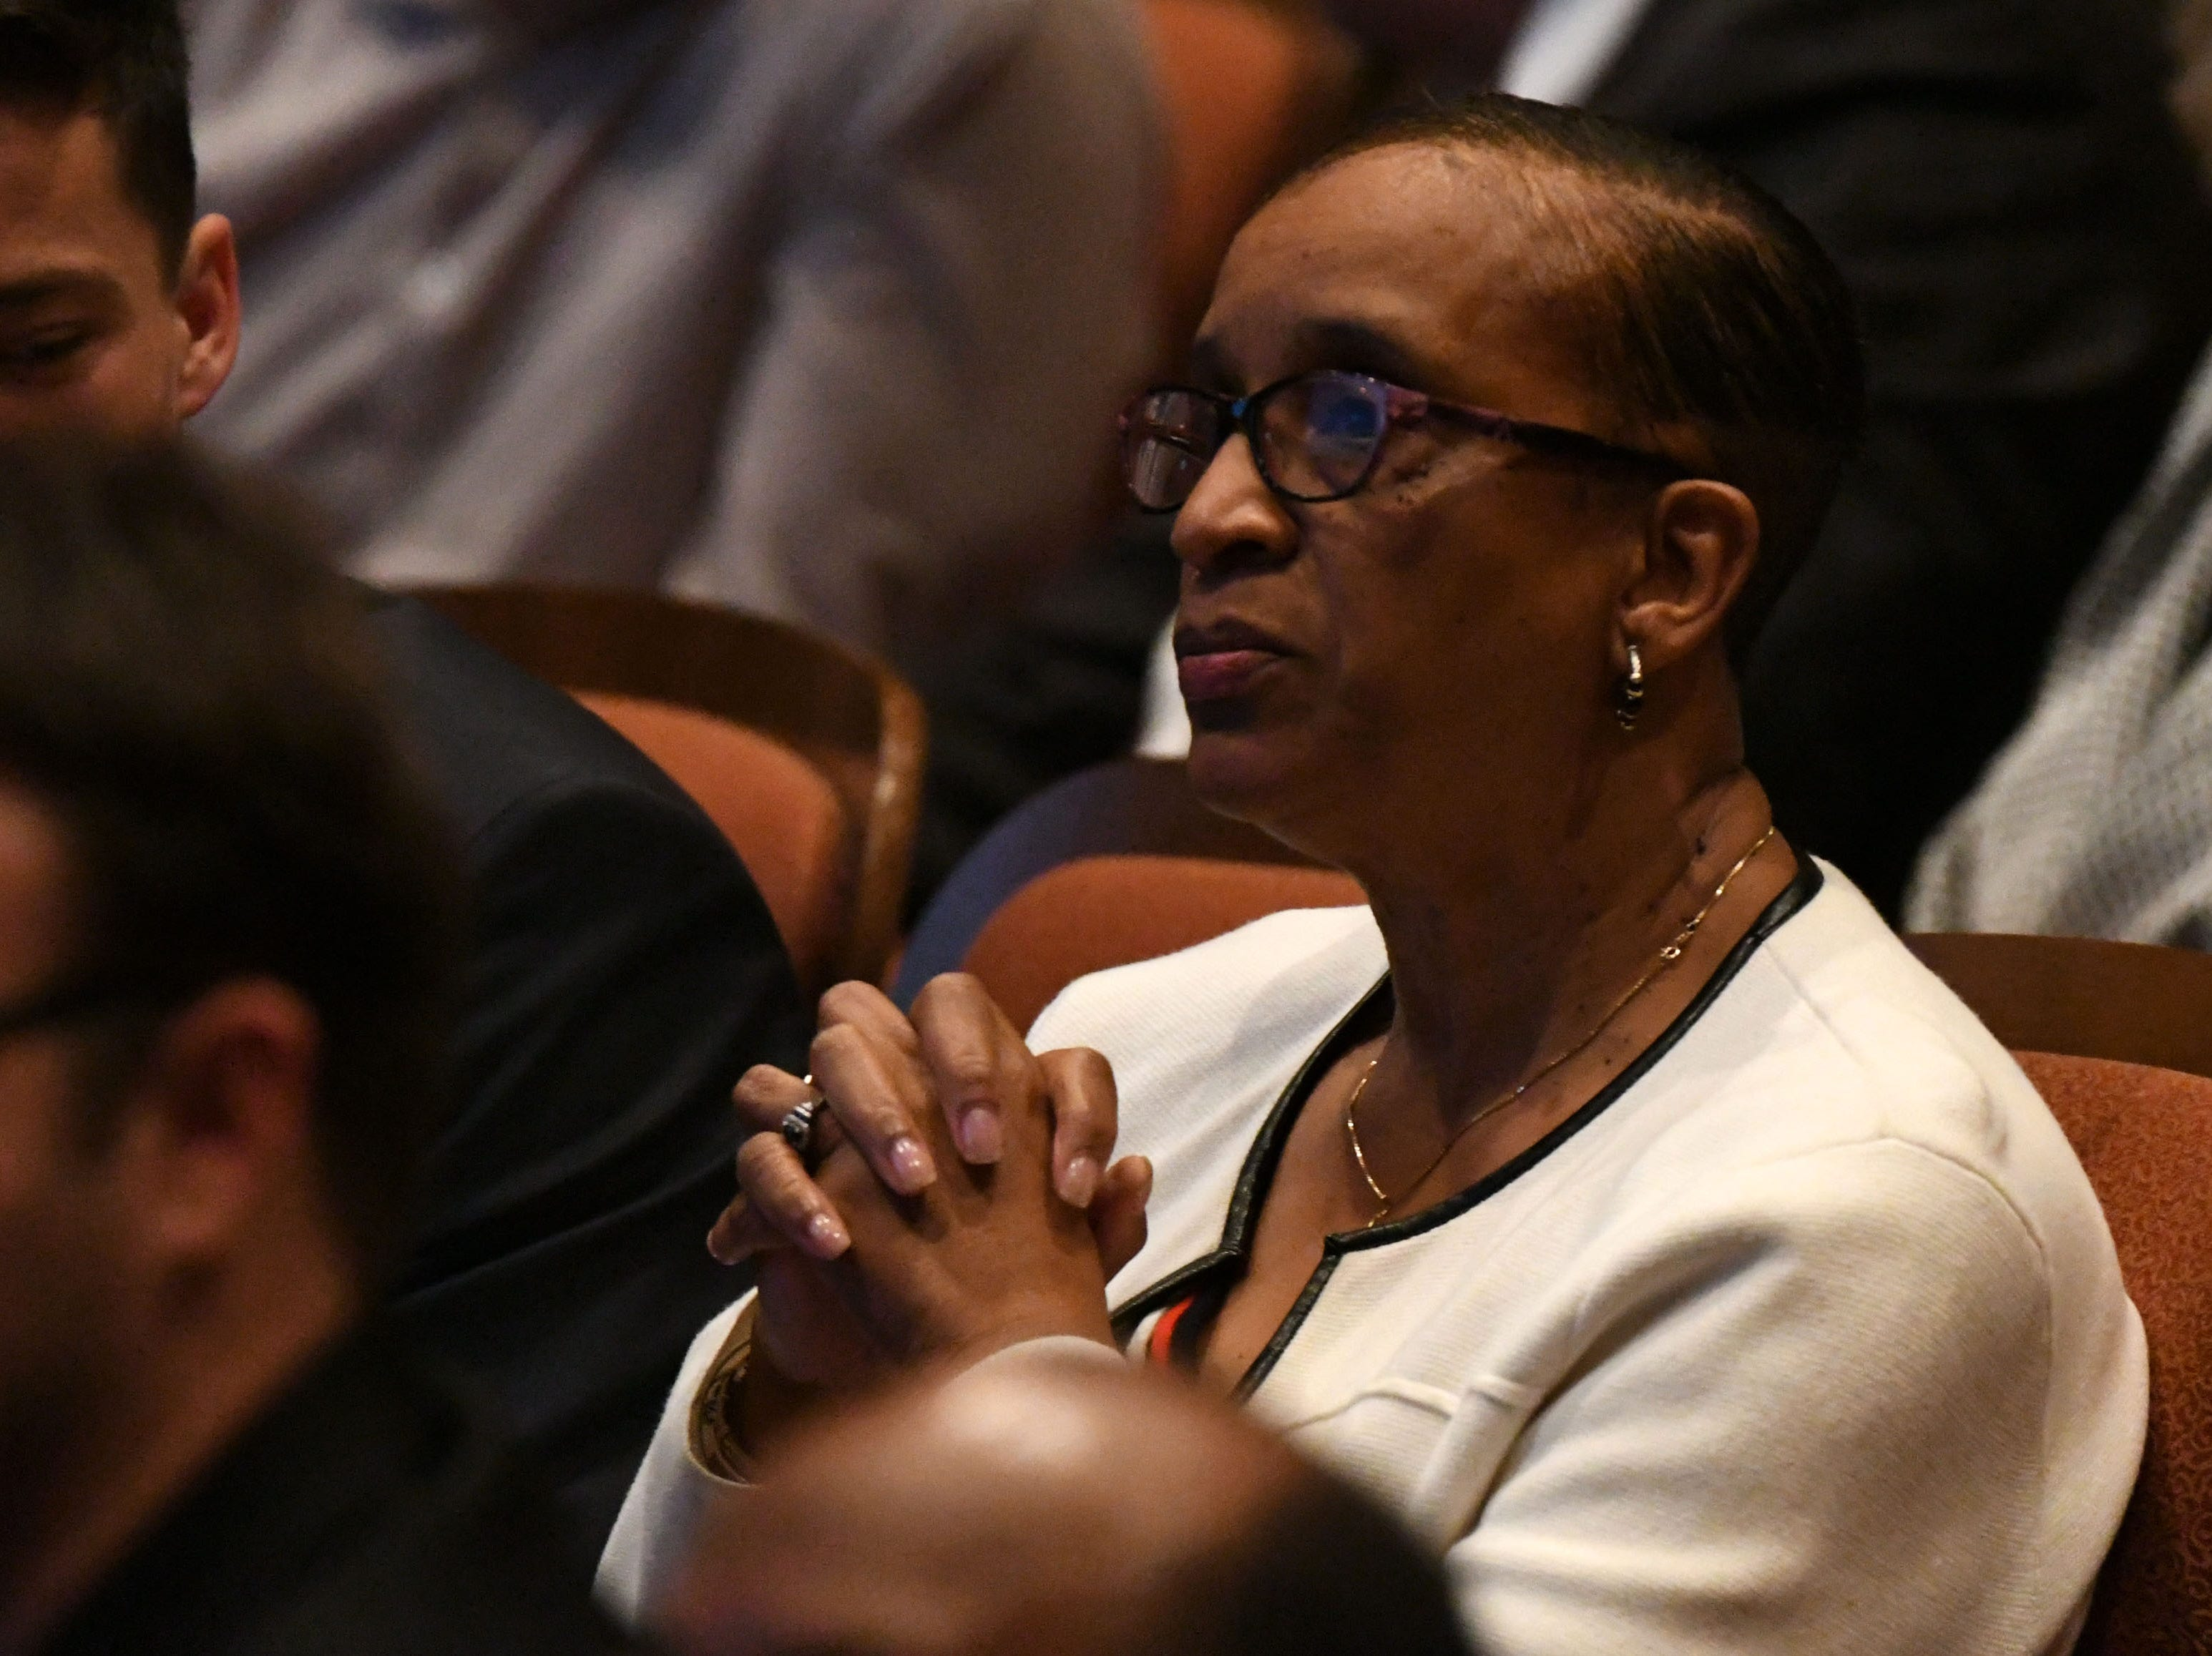 Commissioner Elaine Bryant sits in the audience of the Ruby Diamond Hall for the Power Forward business event, Wednesday Feb. 6, 2019. Shark Tank co-star and serial entrepreneur Kevin O'Leary was the featured speaker at the event.